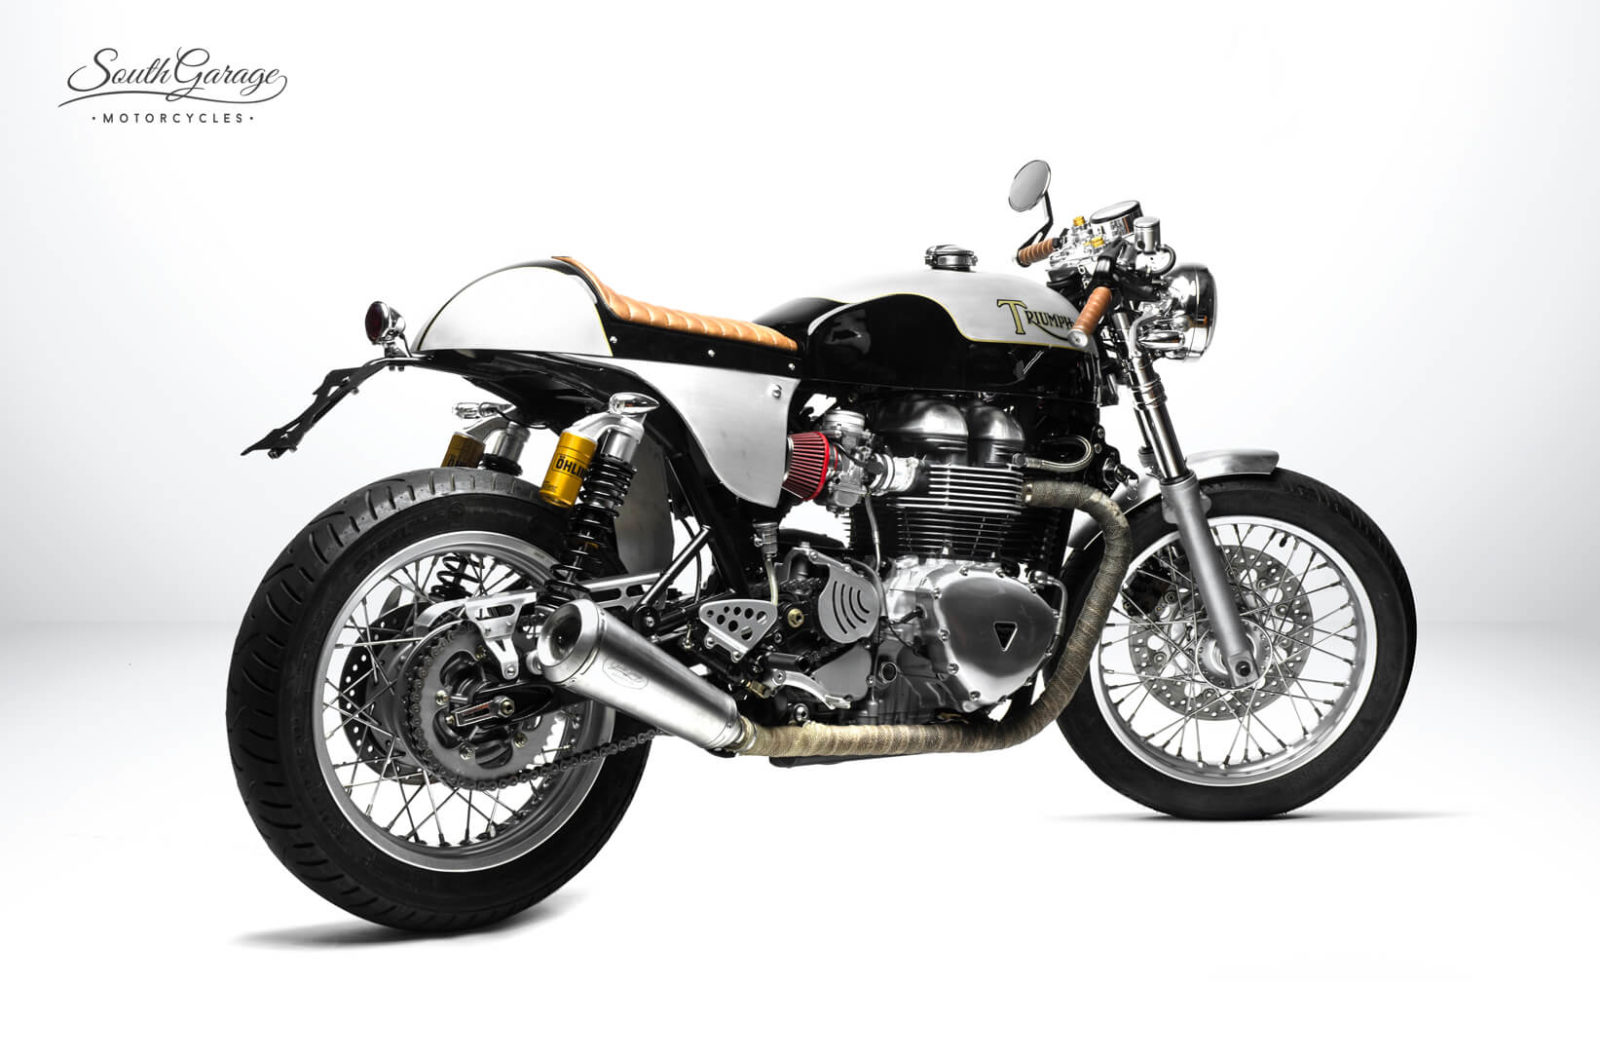 Ural Engine Diagram additionally Cbr1100xx Wiring Diagram moreover Wiring Diagrams in addition Honda Forza Nss300 Road Tests 2 mute furthermore 7 Inch Headlight Fairing. on triumph thruxton wiring diagram